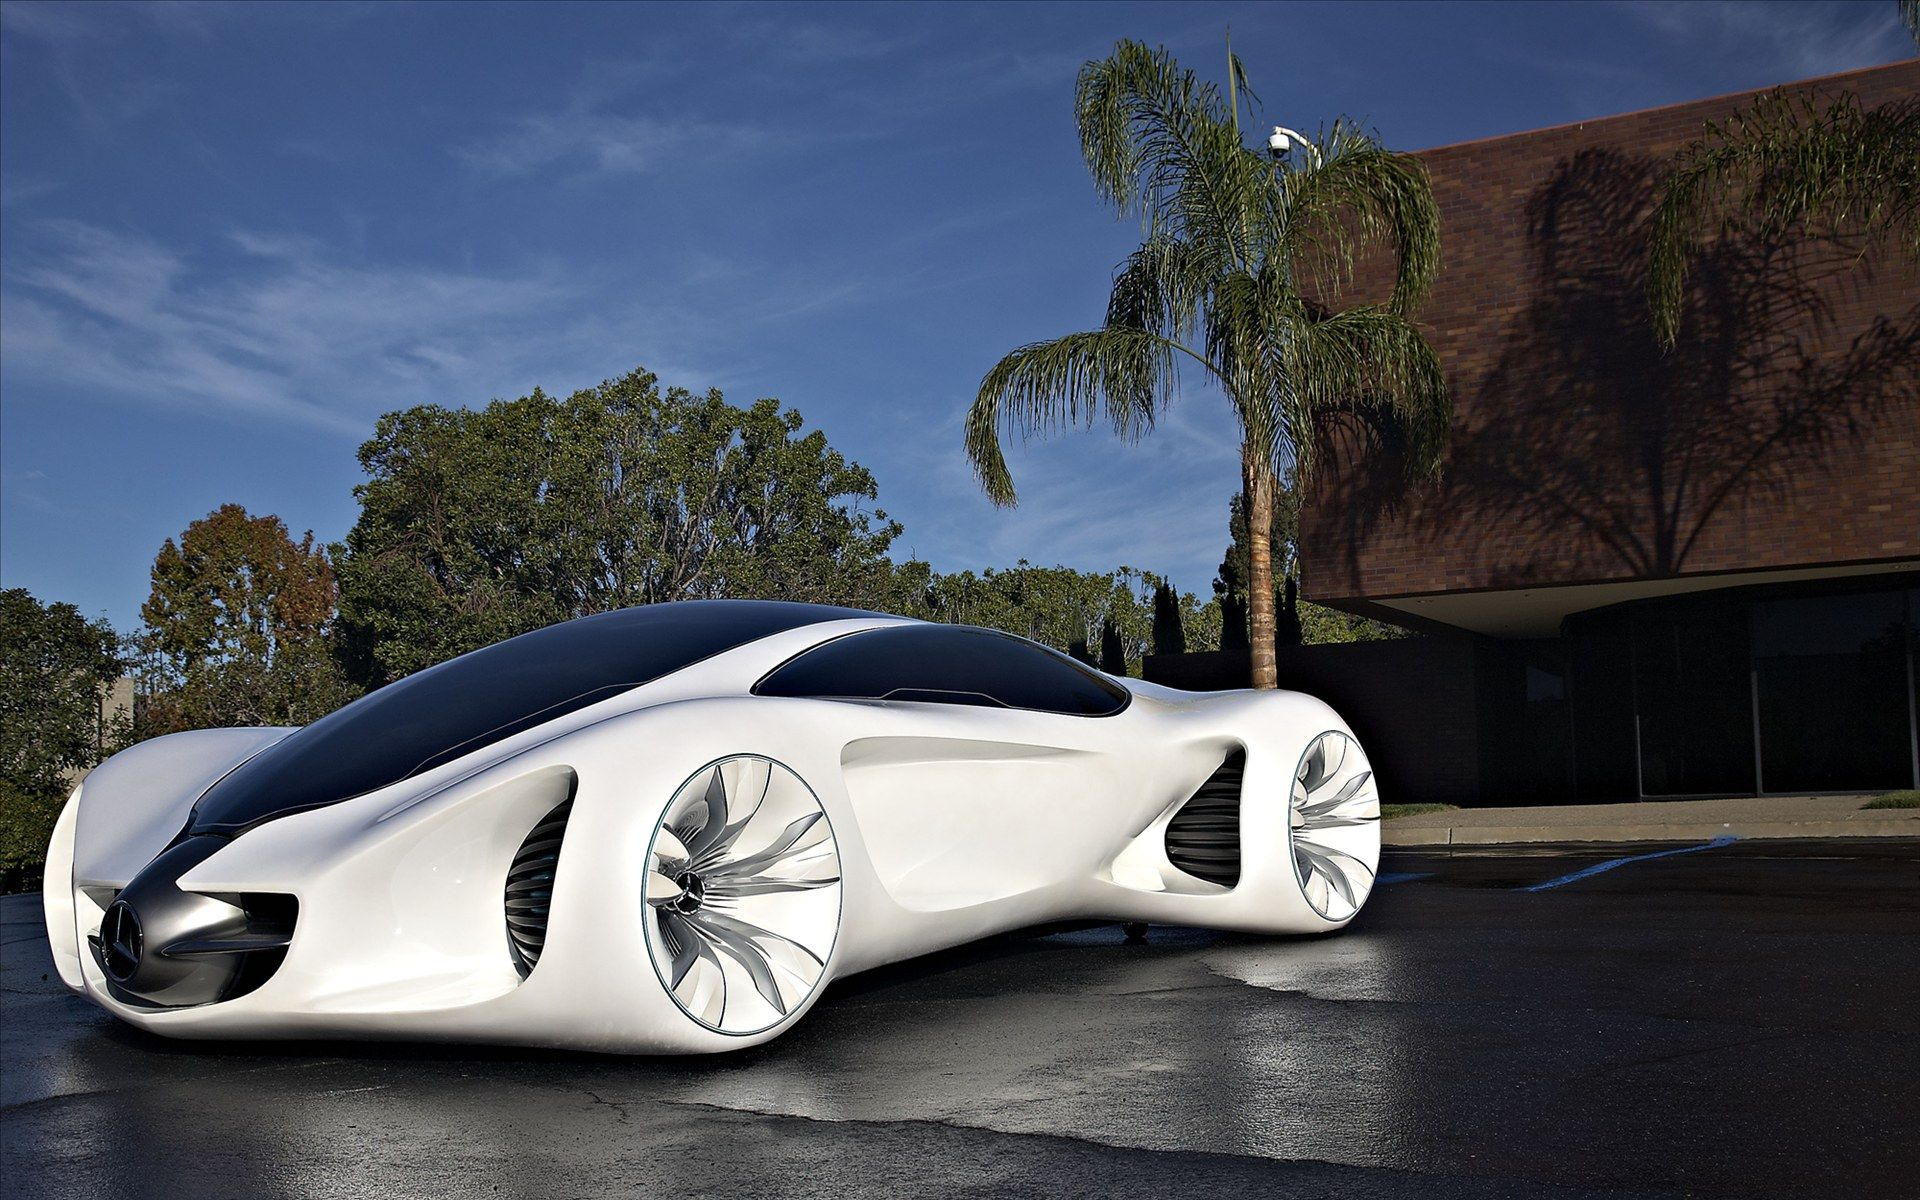 Mercedes-Benz Biome Concept Do you like this cool car? Find out alot more expensive limousines at www.classiquelimo.com 타짜카지노 해외카지노타짜카지노 해외카지노타짜카지노 해외카지노타짜카지노 해외카지노